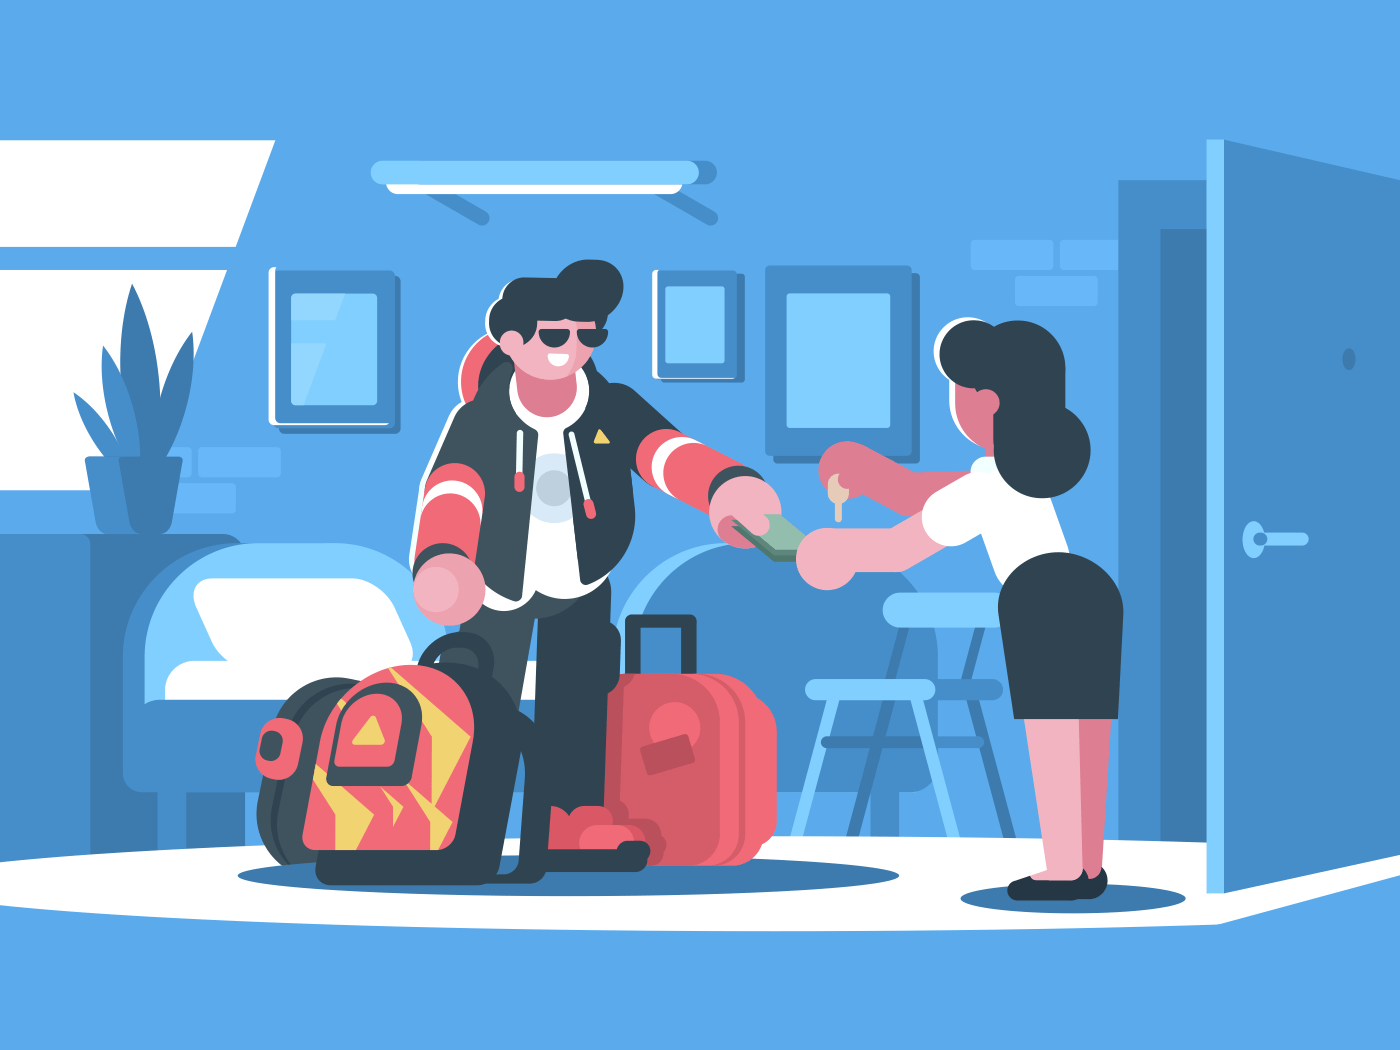 Rent apartment or room. Man rents accommodation. Vector flat illustration